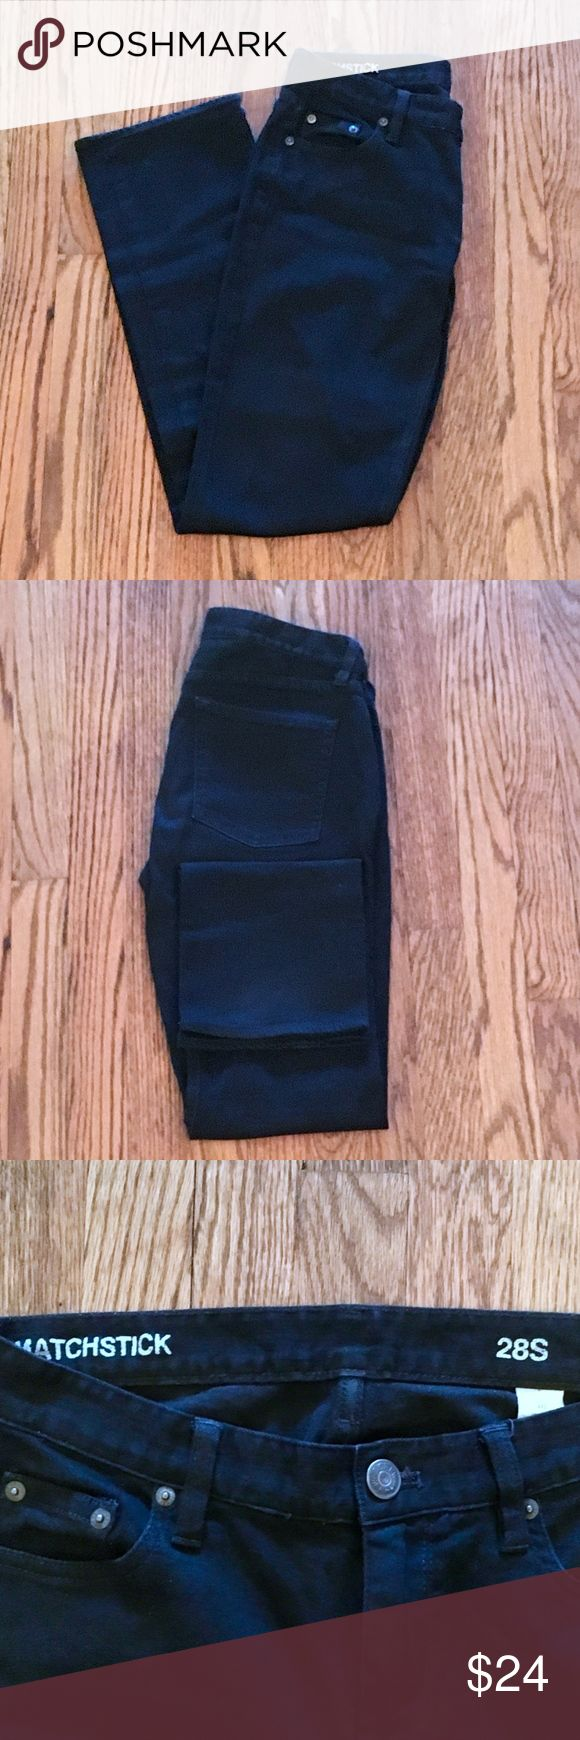 """J. CREW Black Matchstick Jeans CROSS TREND FIT!  Straight without being tight, these J. Crew Matchstick jeans bridge the gap between the skinny/baggy trend.   DETAILS  •Black •98% Cotton, 2% Elasthanne •Subtle stretch •Mid rise •Straight hips-ankles  CONDITION  •Very good •Rarely worn •Dry cleaned only •No fading, fraying, stretching, flaws •Smoke free home  FLAT MEASUREMENTS  SIZE: 28S WAIST: 15"""" HIPS: 16.5"""" LENGTH: 37.5"""" INSEAM: 28.5""""  Tags: Comfortable; Flattering; Transitional…"""